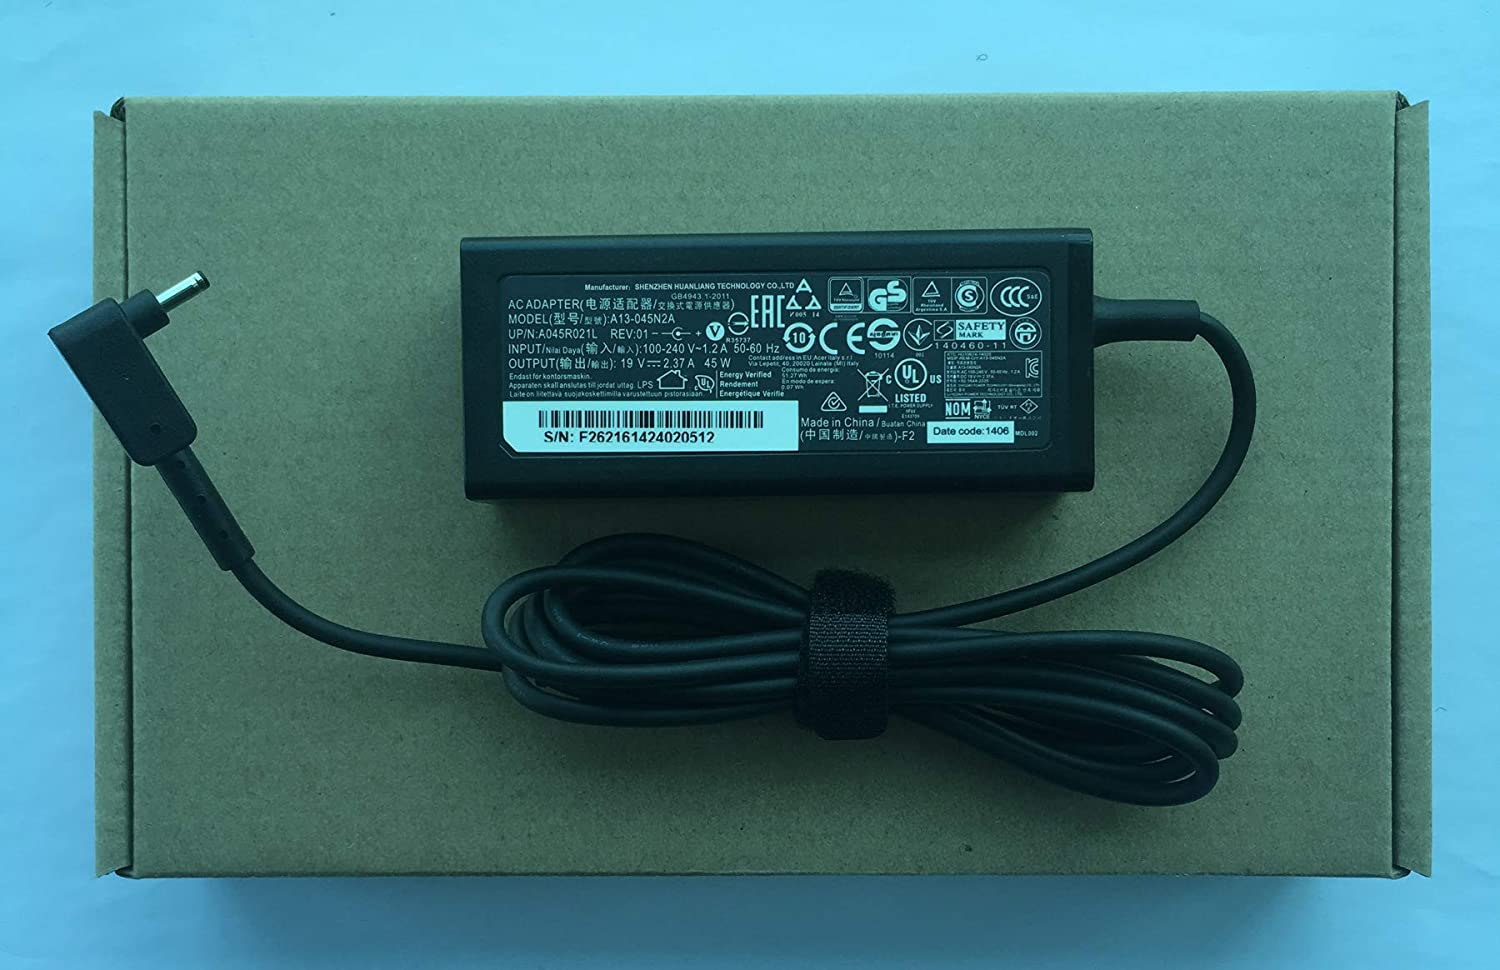 Original 45W AC Adapter Charger for Acer Chromebook CB3 CB5 11 13 14 15 R11 R13 A13-045N2A N15Q9 C731 C738T CB3-532 CB3-431 CB3-131 PA-1450-26 Laptop Power Supply Cord